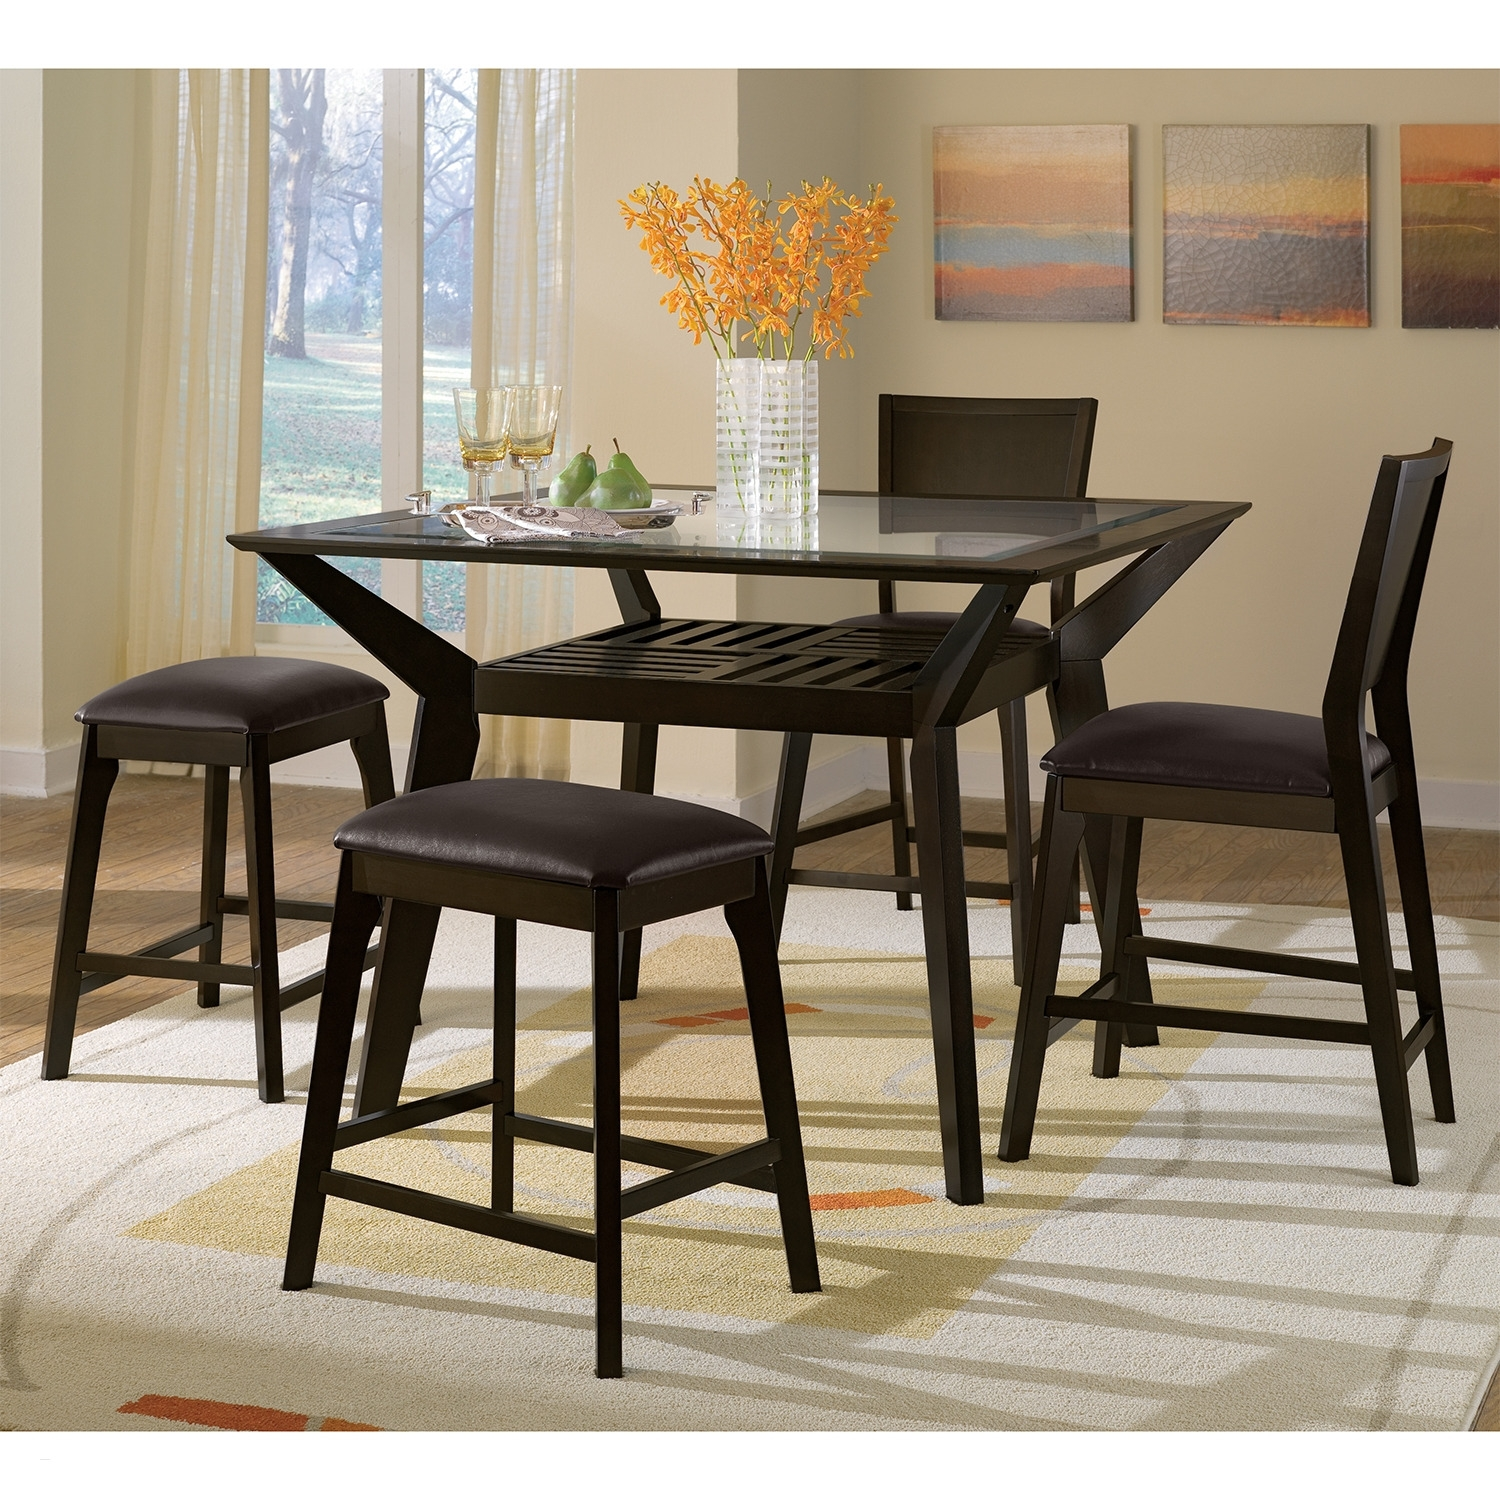 Awesome 98 Stunning Dining Room Sets